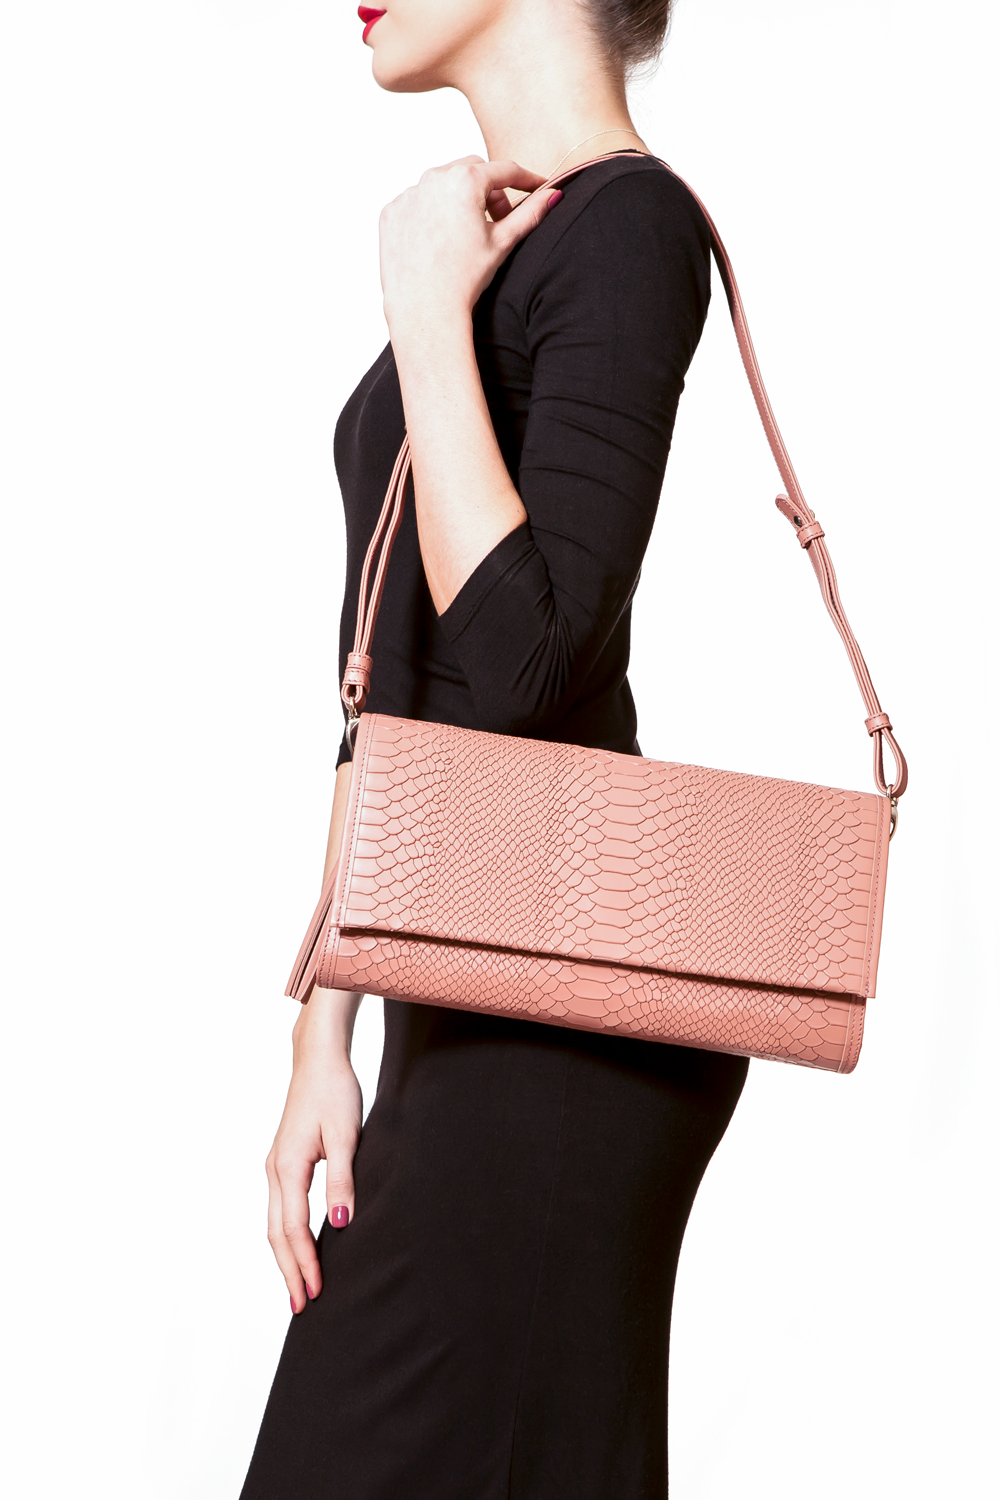 'Cara' Envelope Clutch in Blush Snake-Effect Leather | Mel Boteri | Model Shoulder Bag View